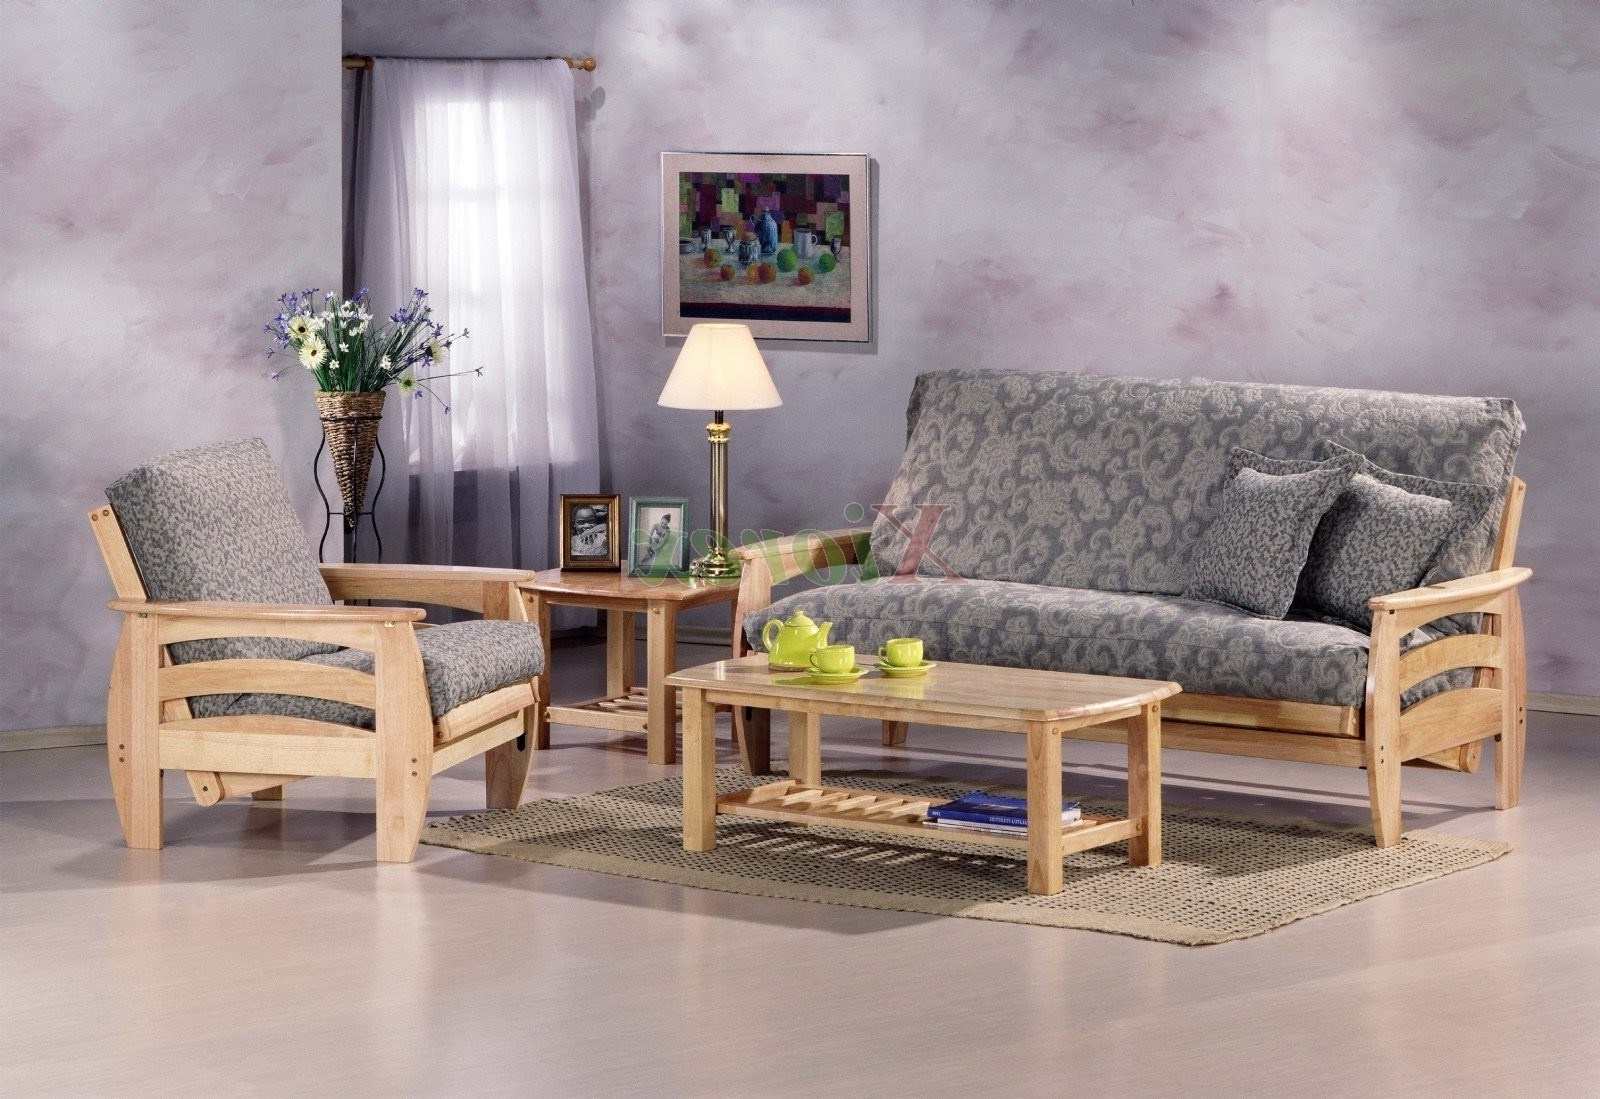 15 Futon Living Room Futon Living Room Set Bm Furnititure with regard to Futon Living Room Sets